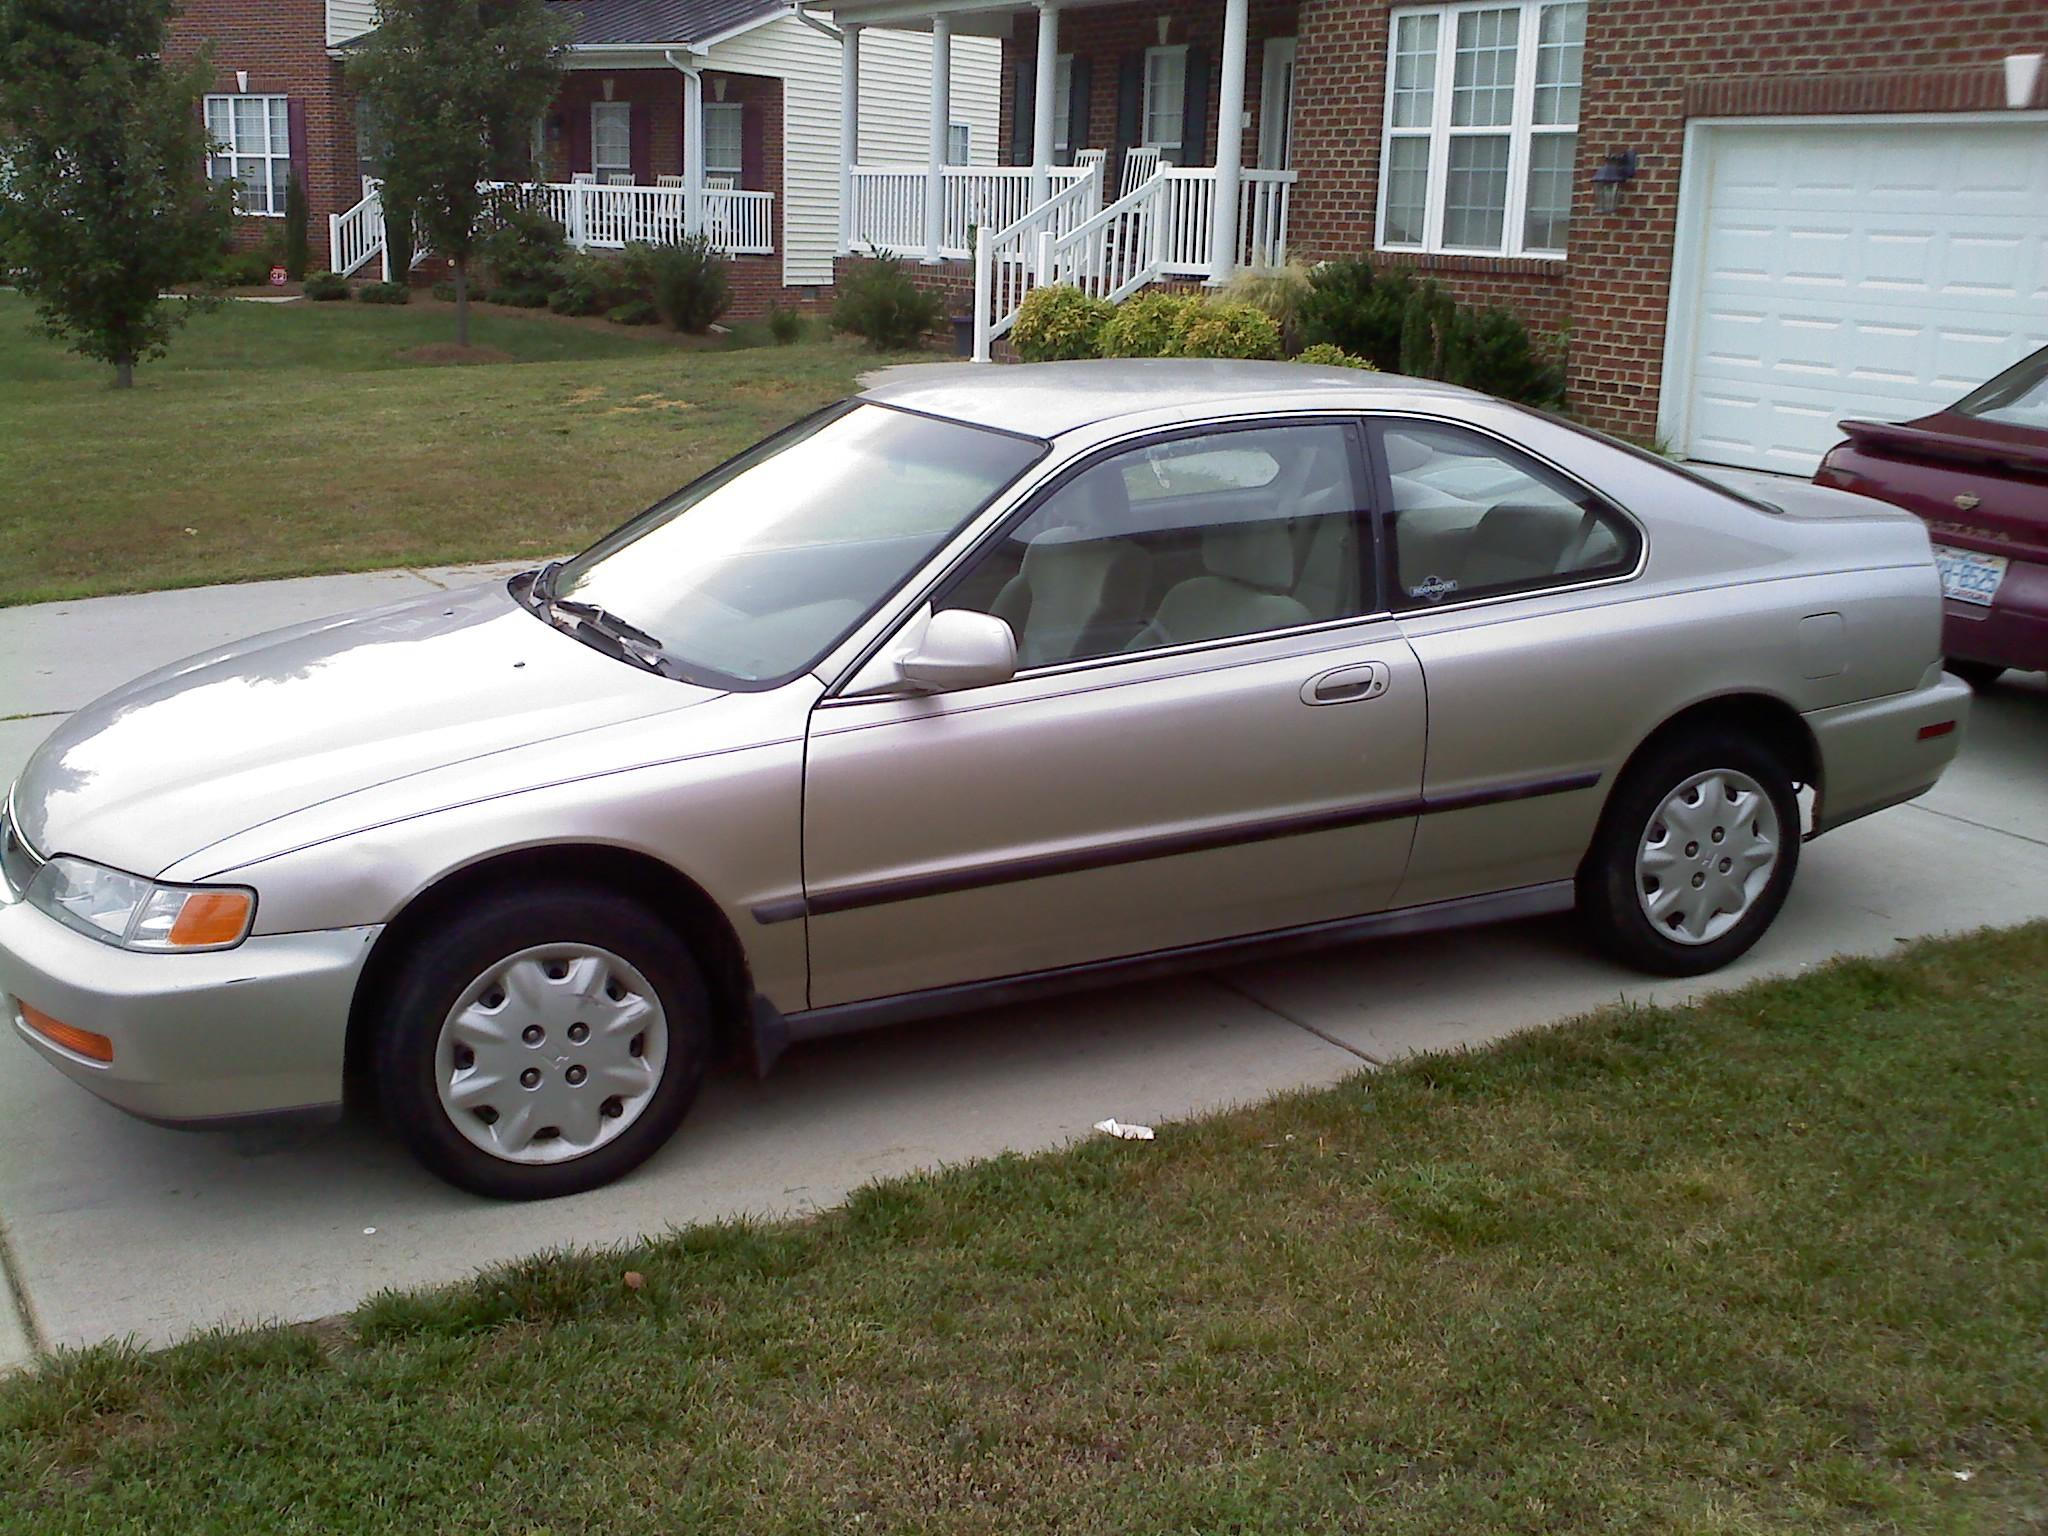 Kickfli12 1997 Honda Accordlx Coupe 2d Specs Photos Modification Info At Cardomain